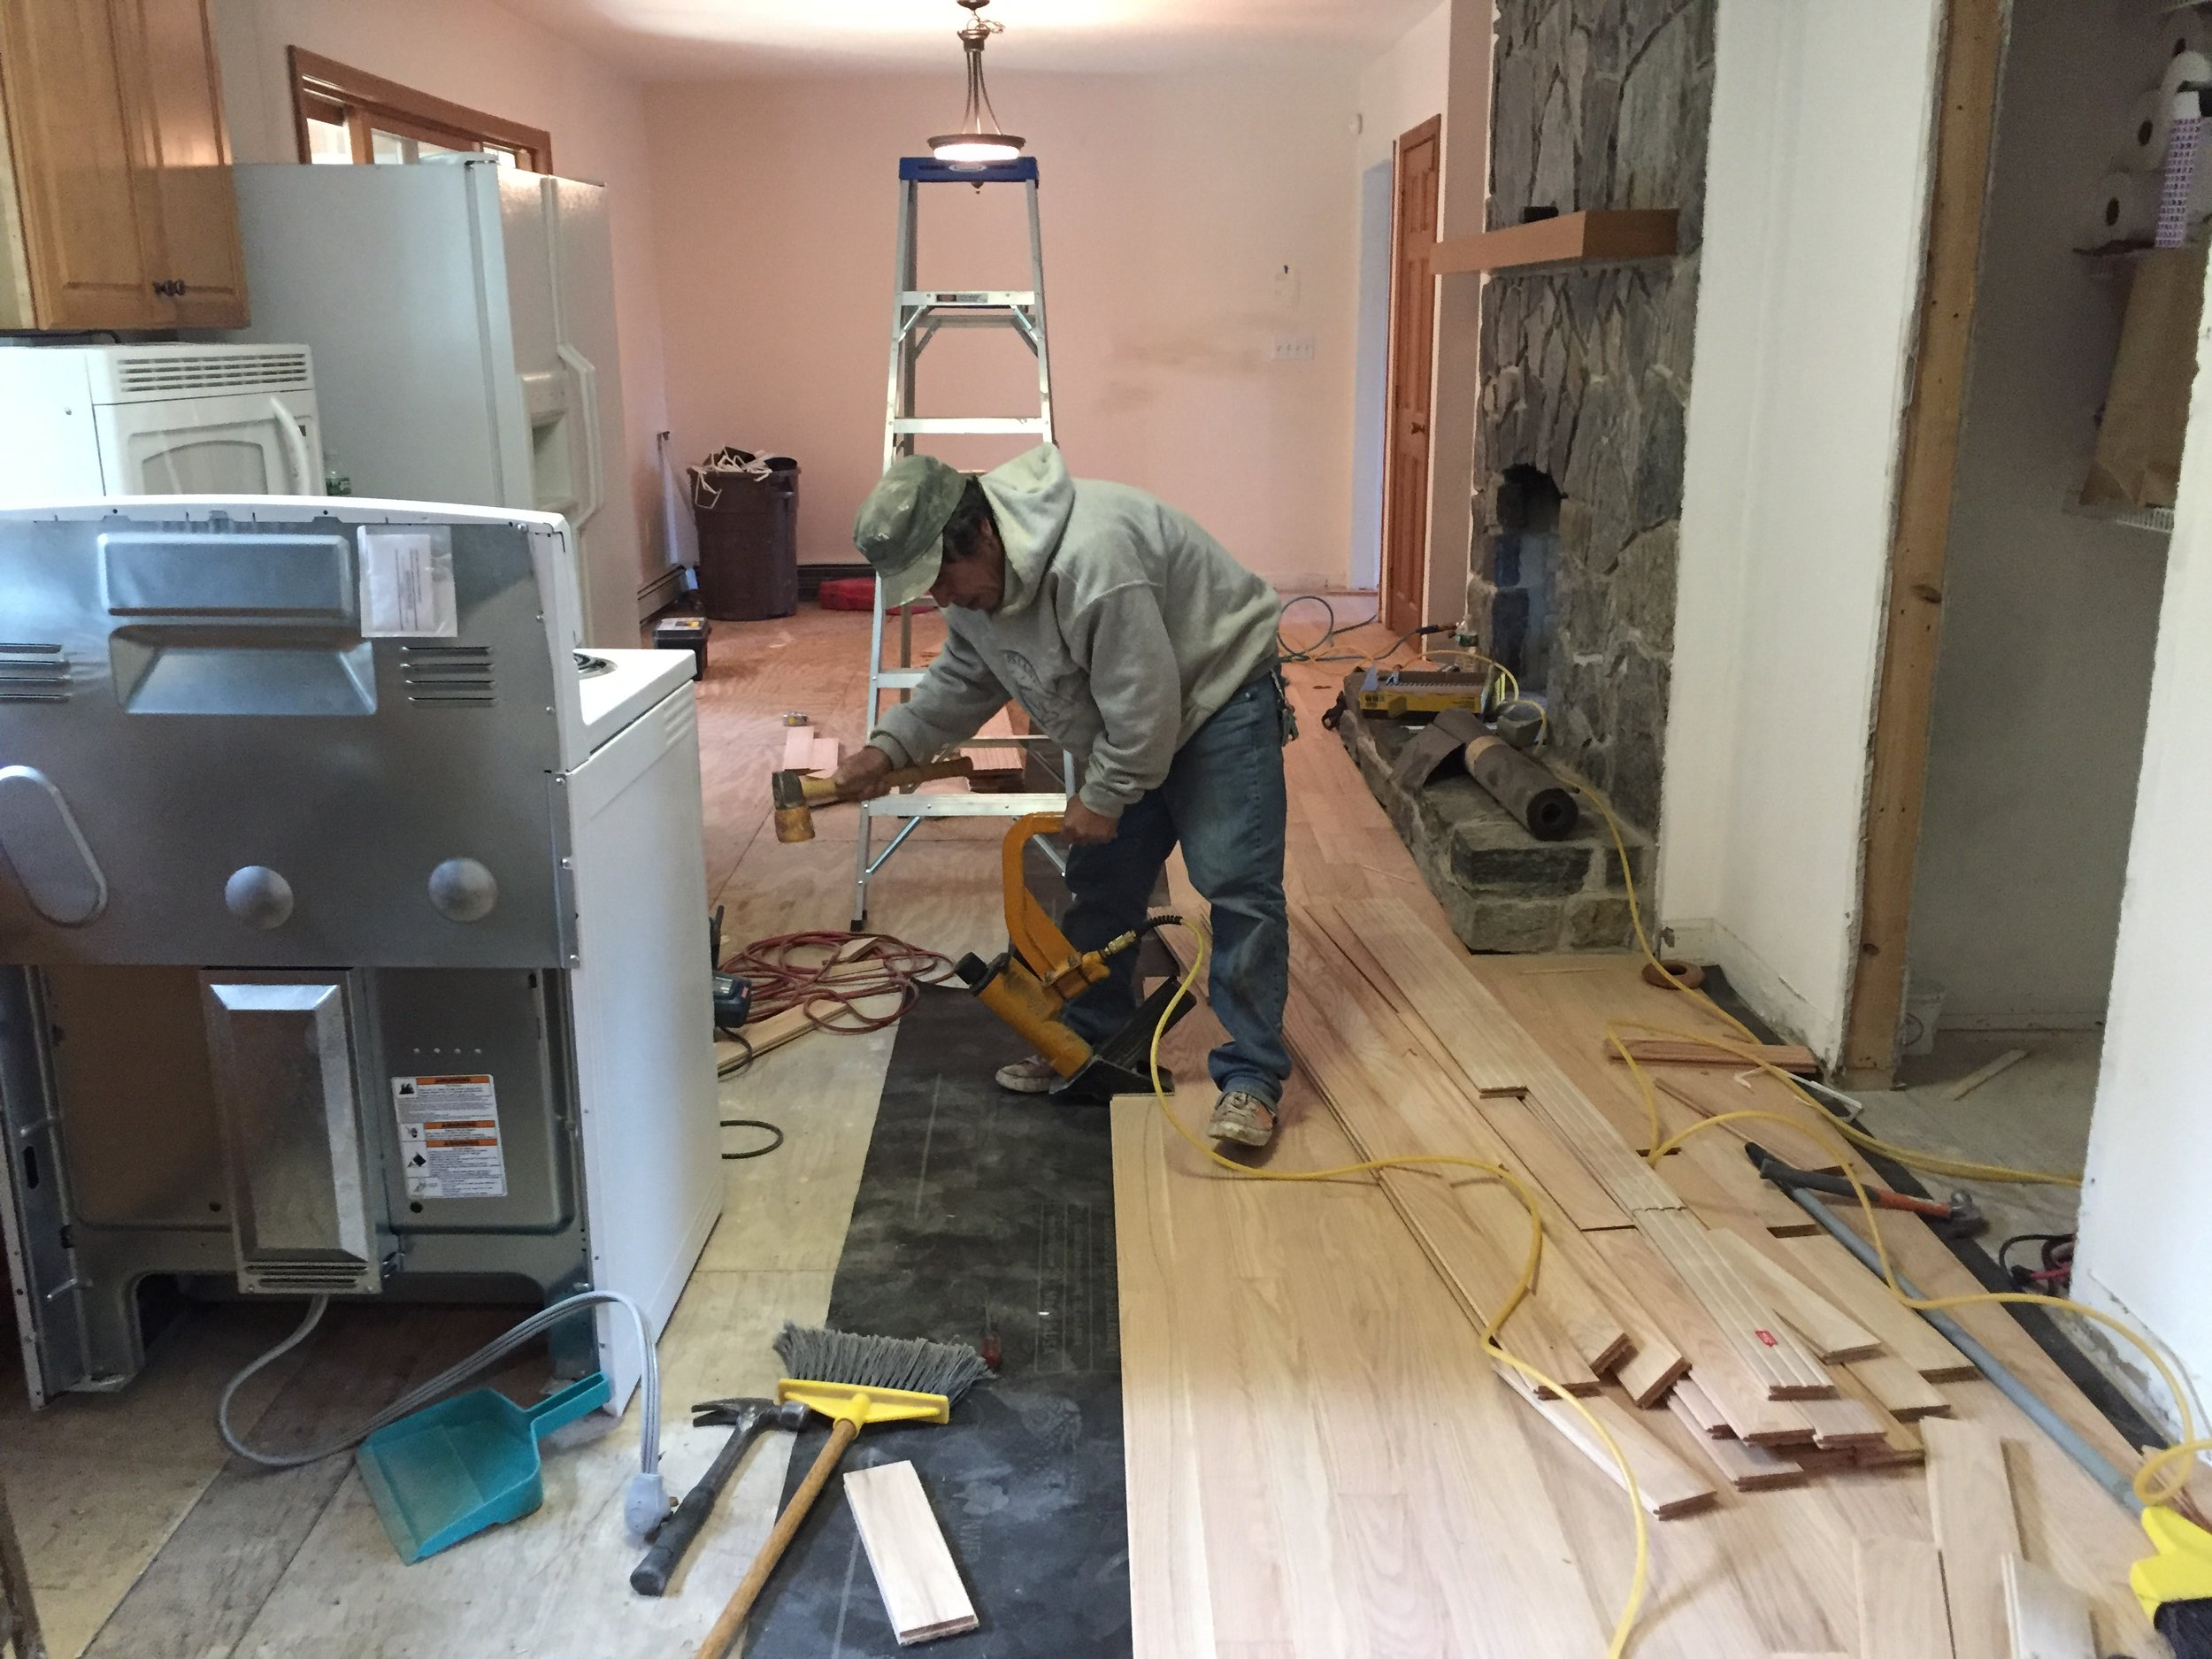 Hardwood flooring being installed